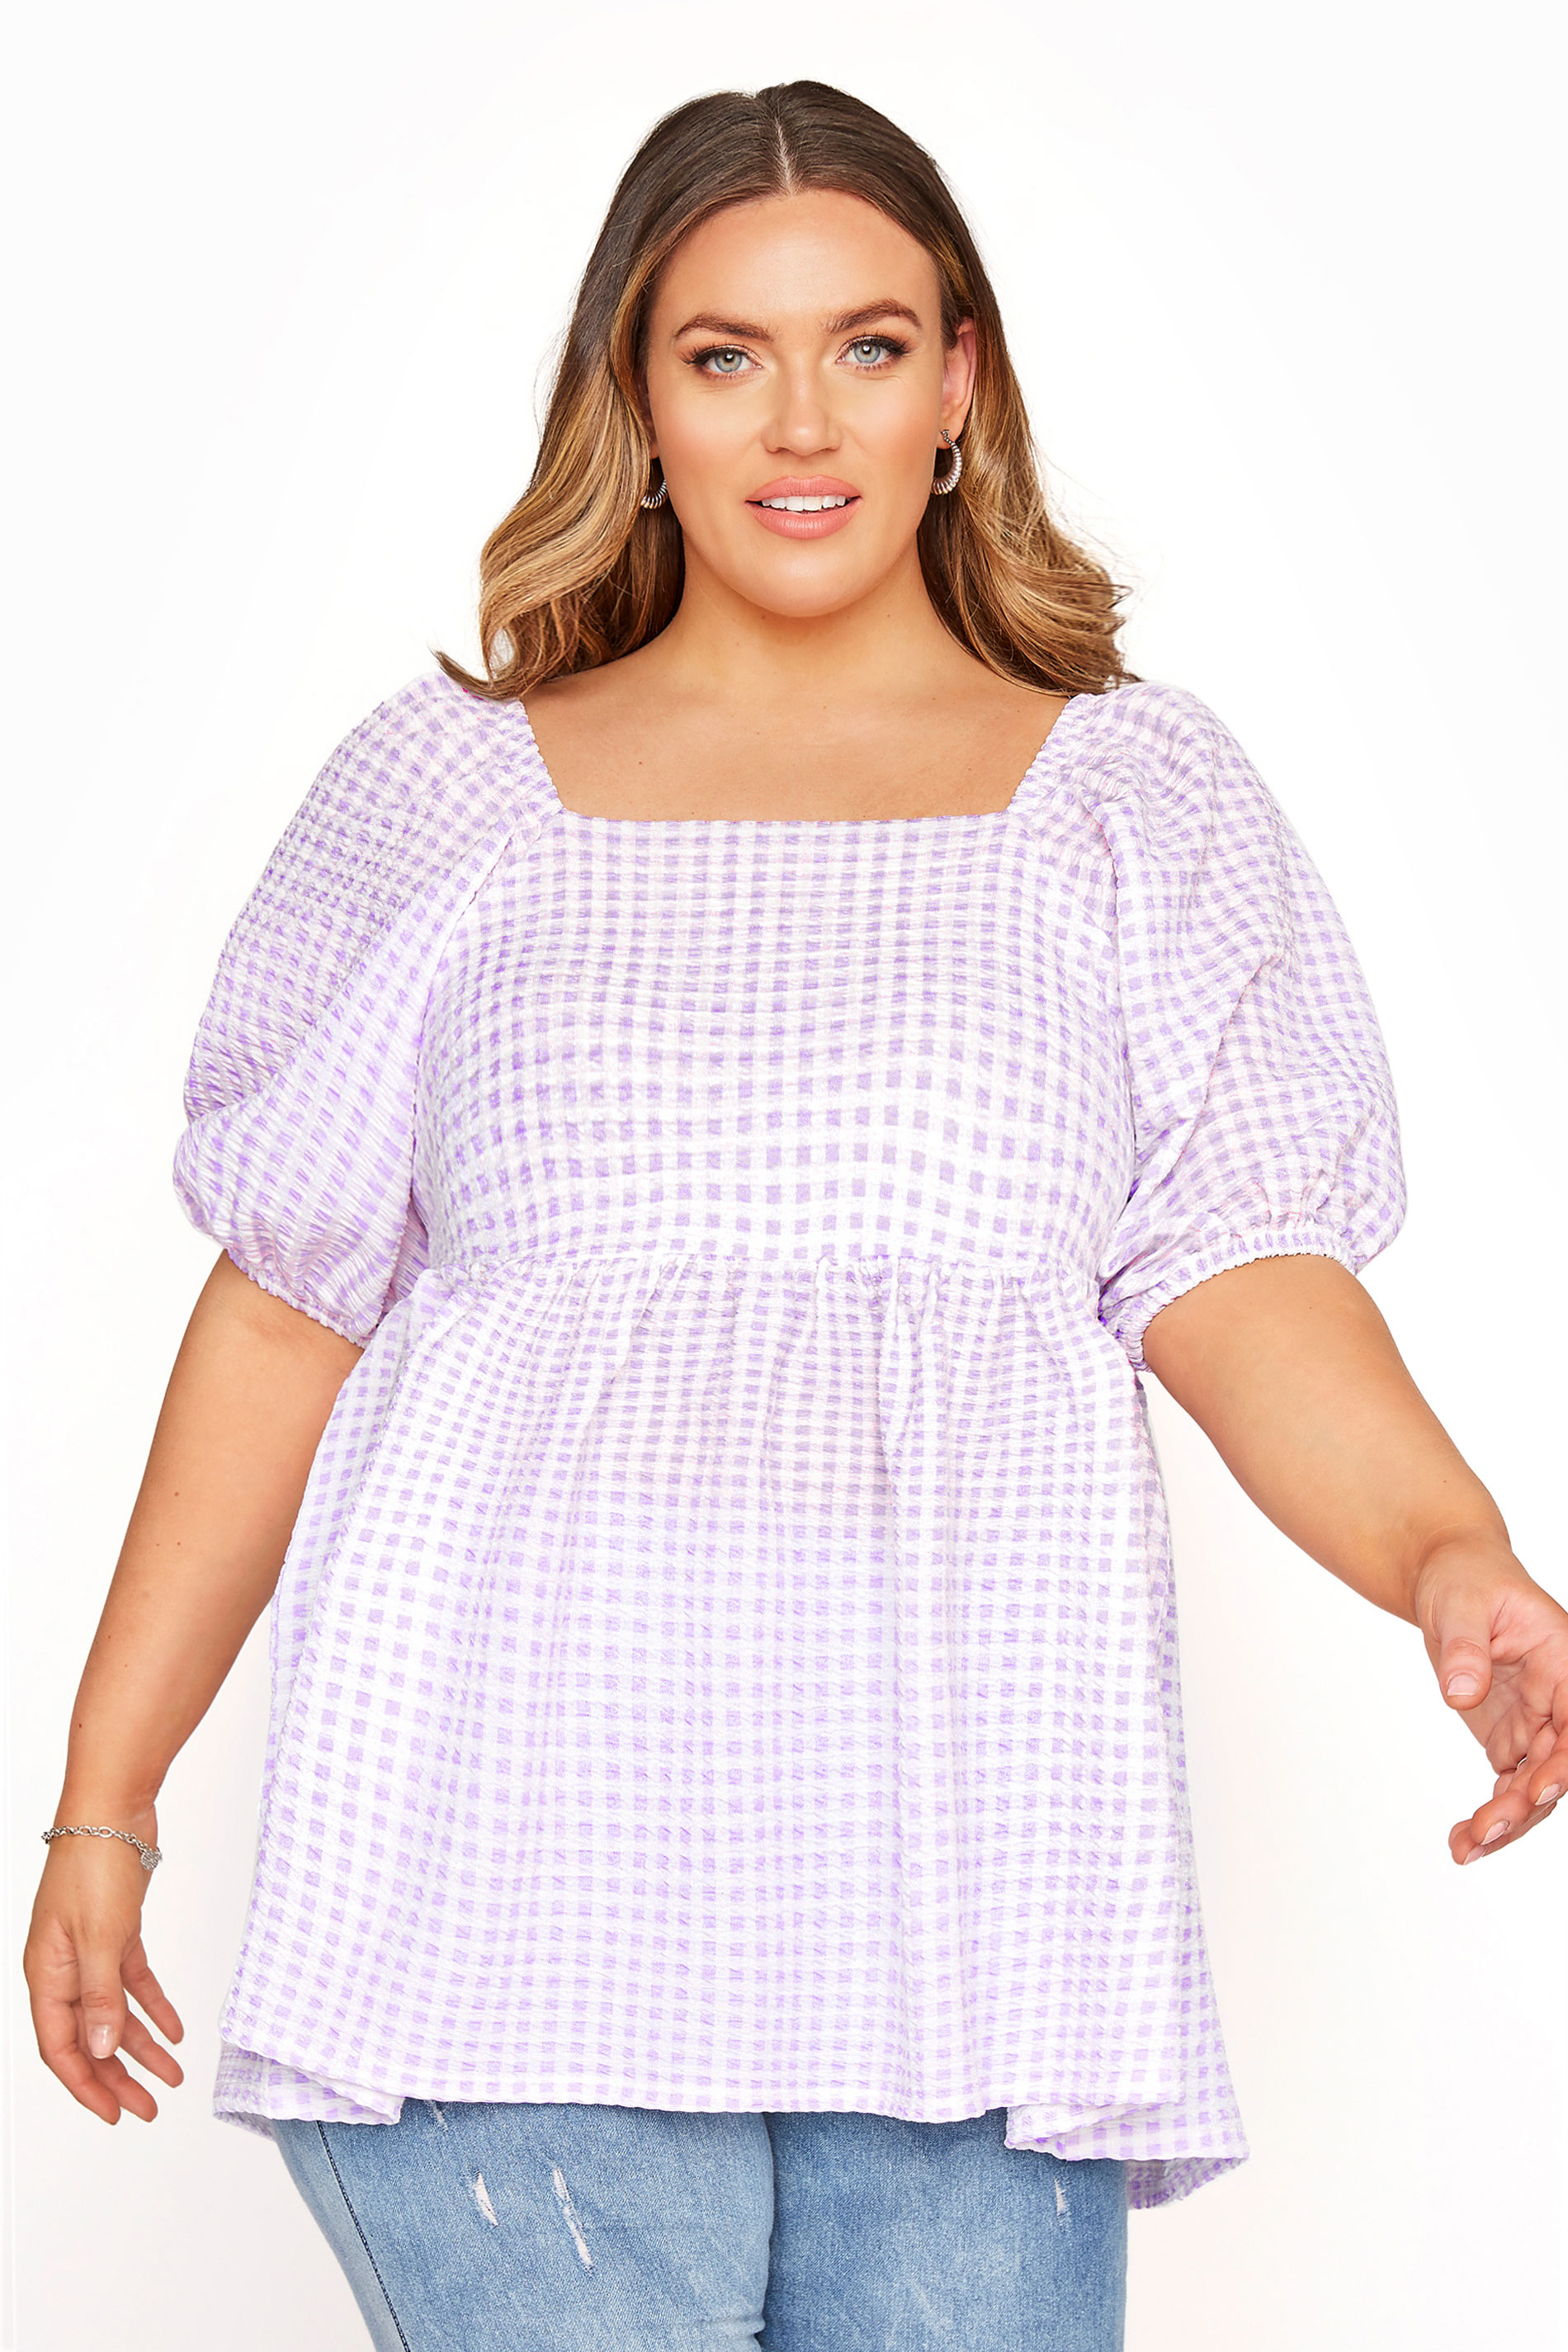 LIMITED COLLECTION Lilac Gingham Milkmaid Top